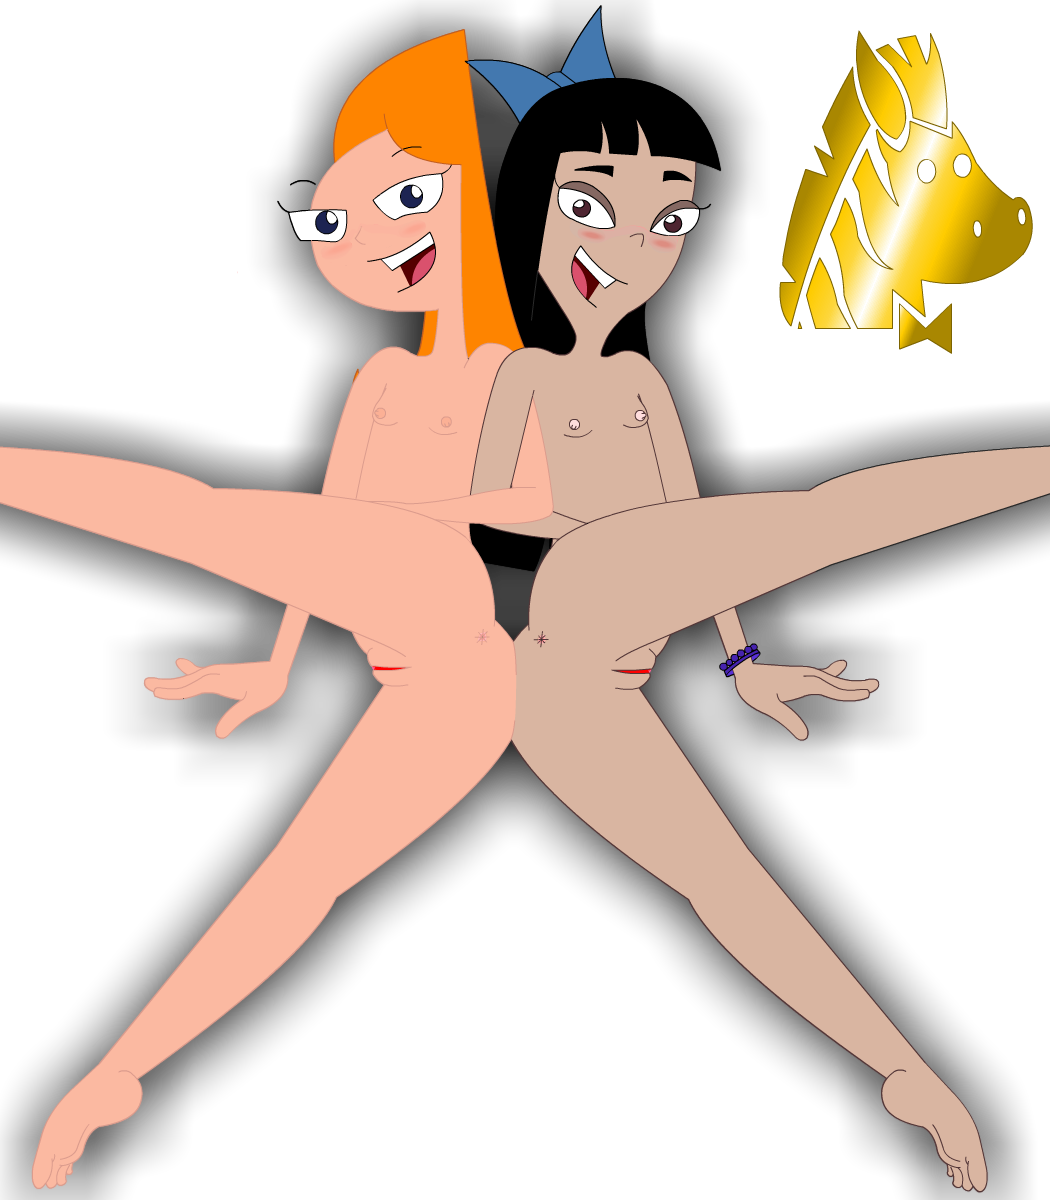 Nackt mom und ferb phineas Phineas And